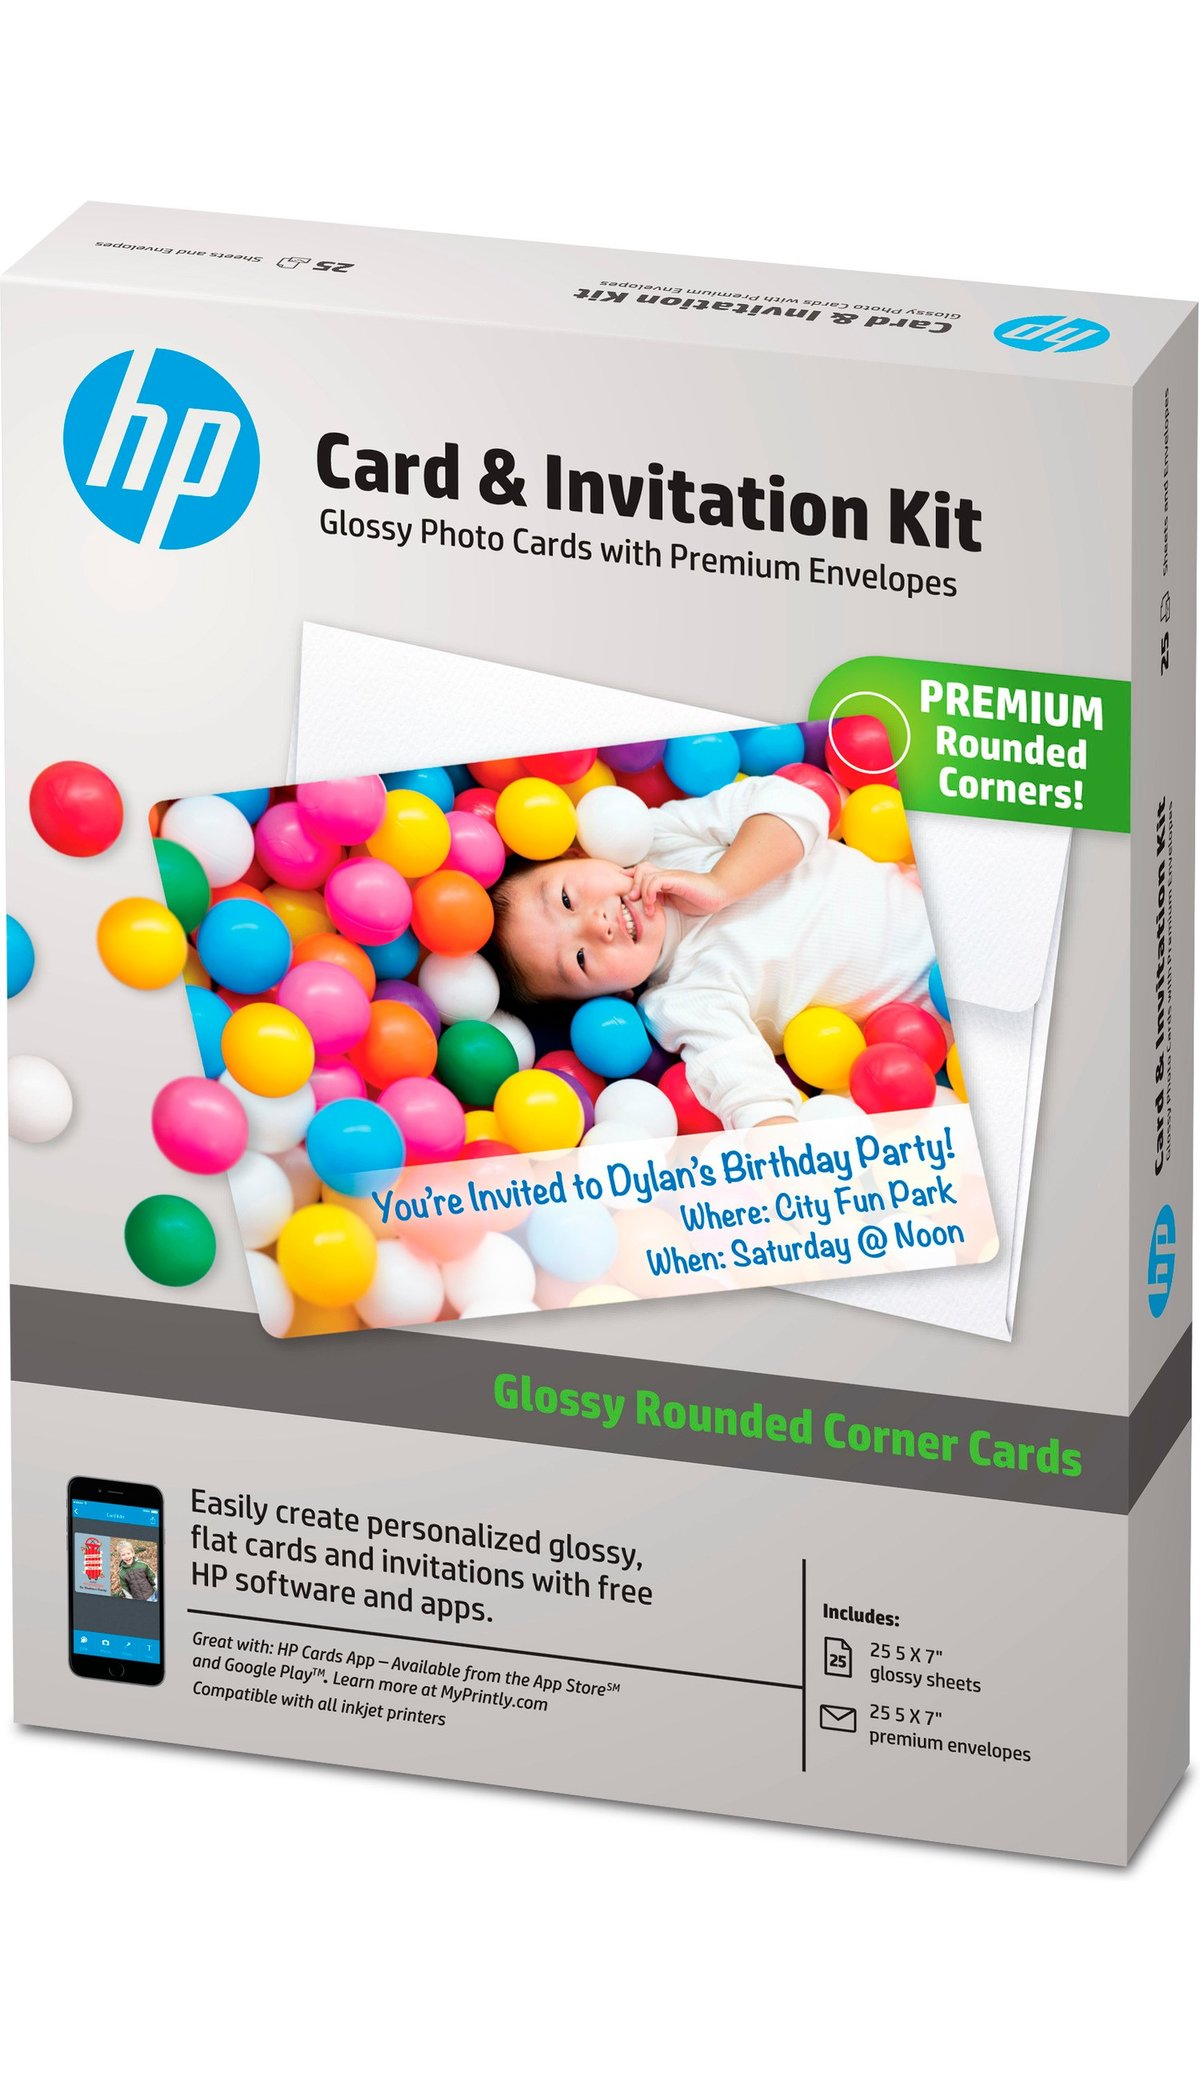 Hp Advanced Photo Paper Card Invitation Kit Rounded Corners White By